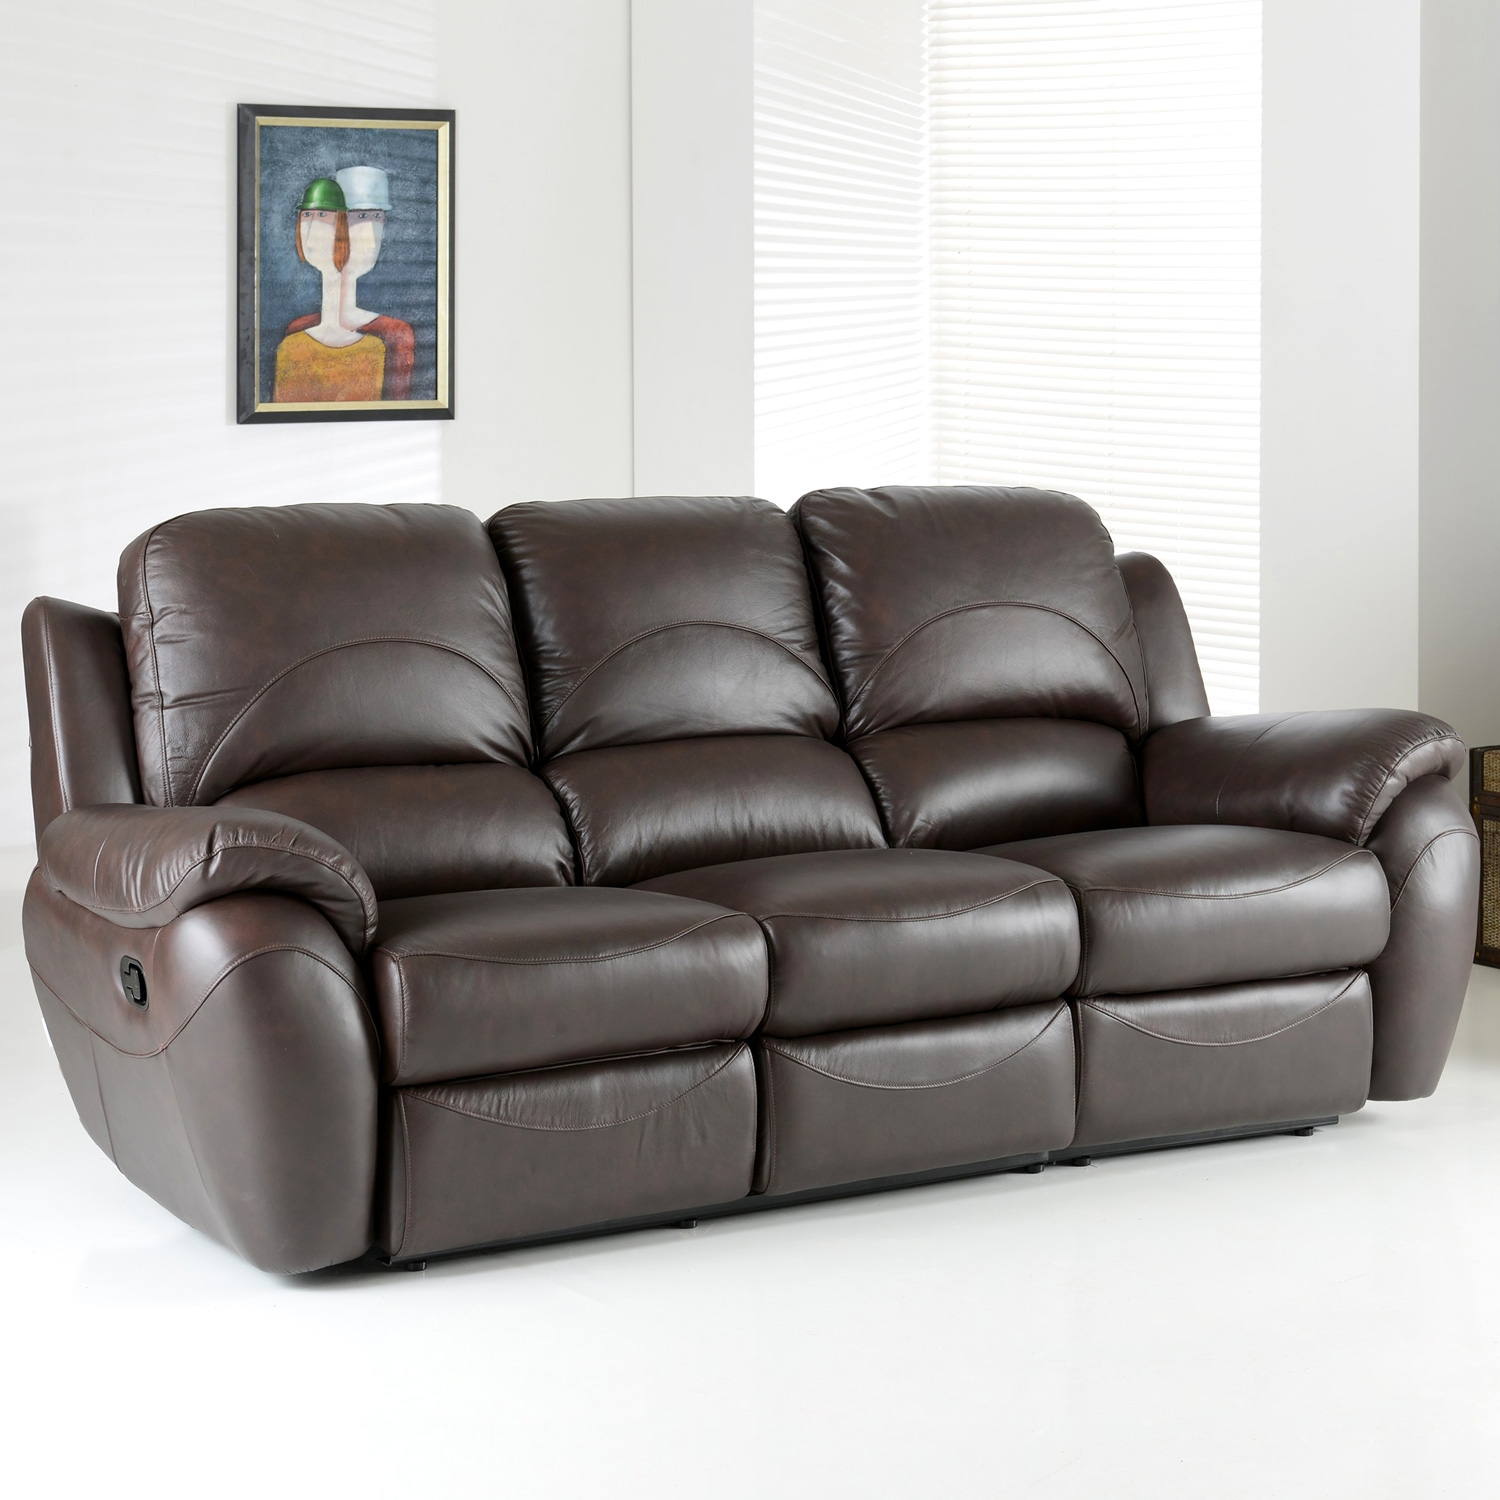 Sofas Center Seater Recliner Sofa Furniture Verona Ideas With With Regard To 3 Seater Leather Sofas (Image 12 of 15)